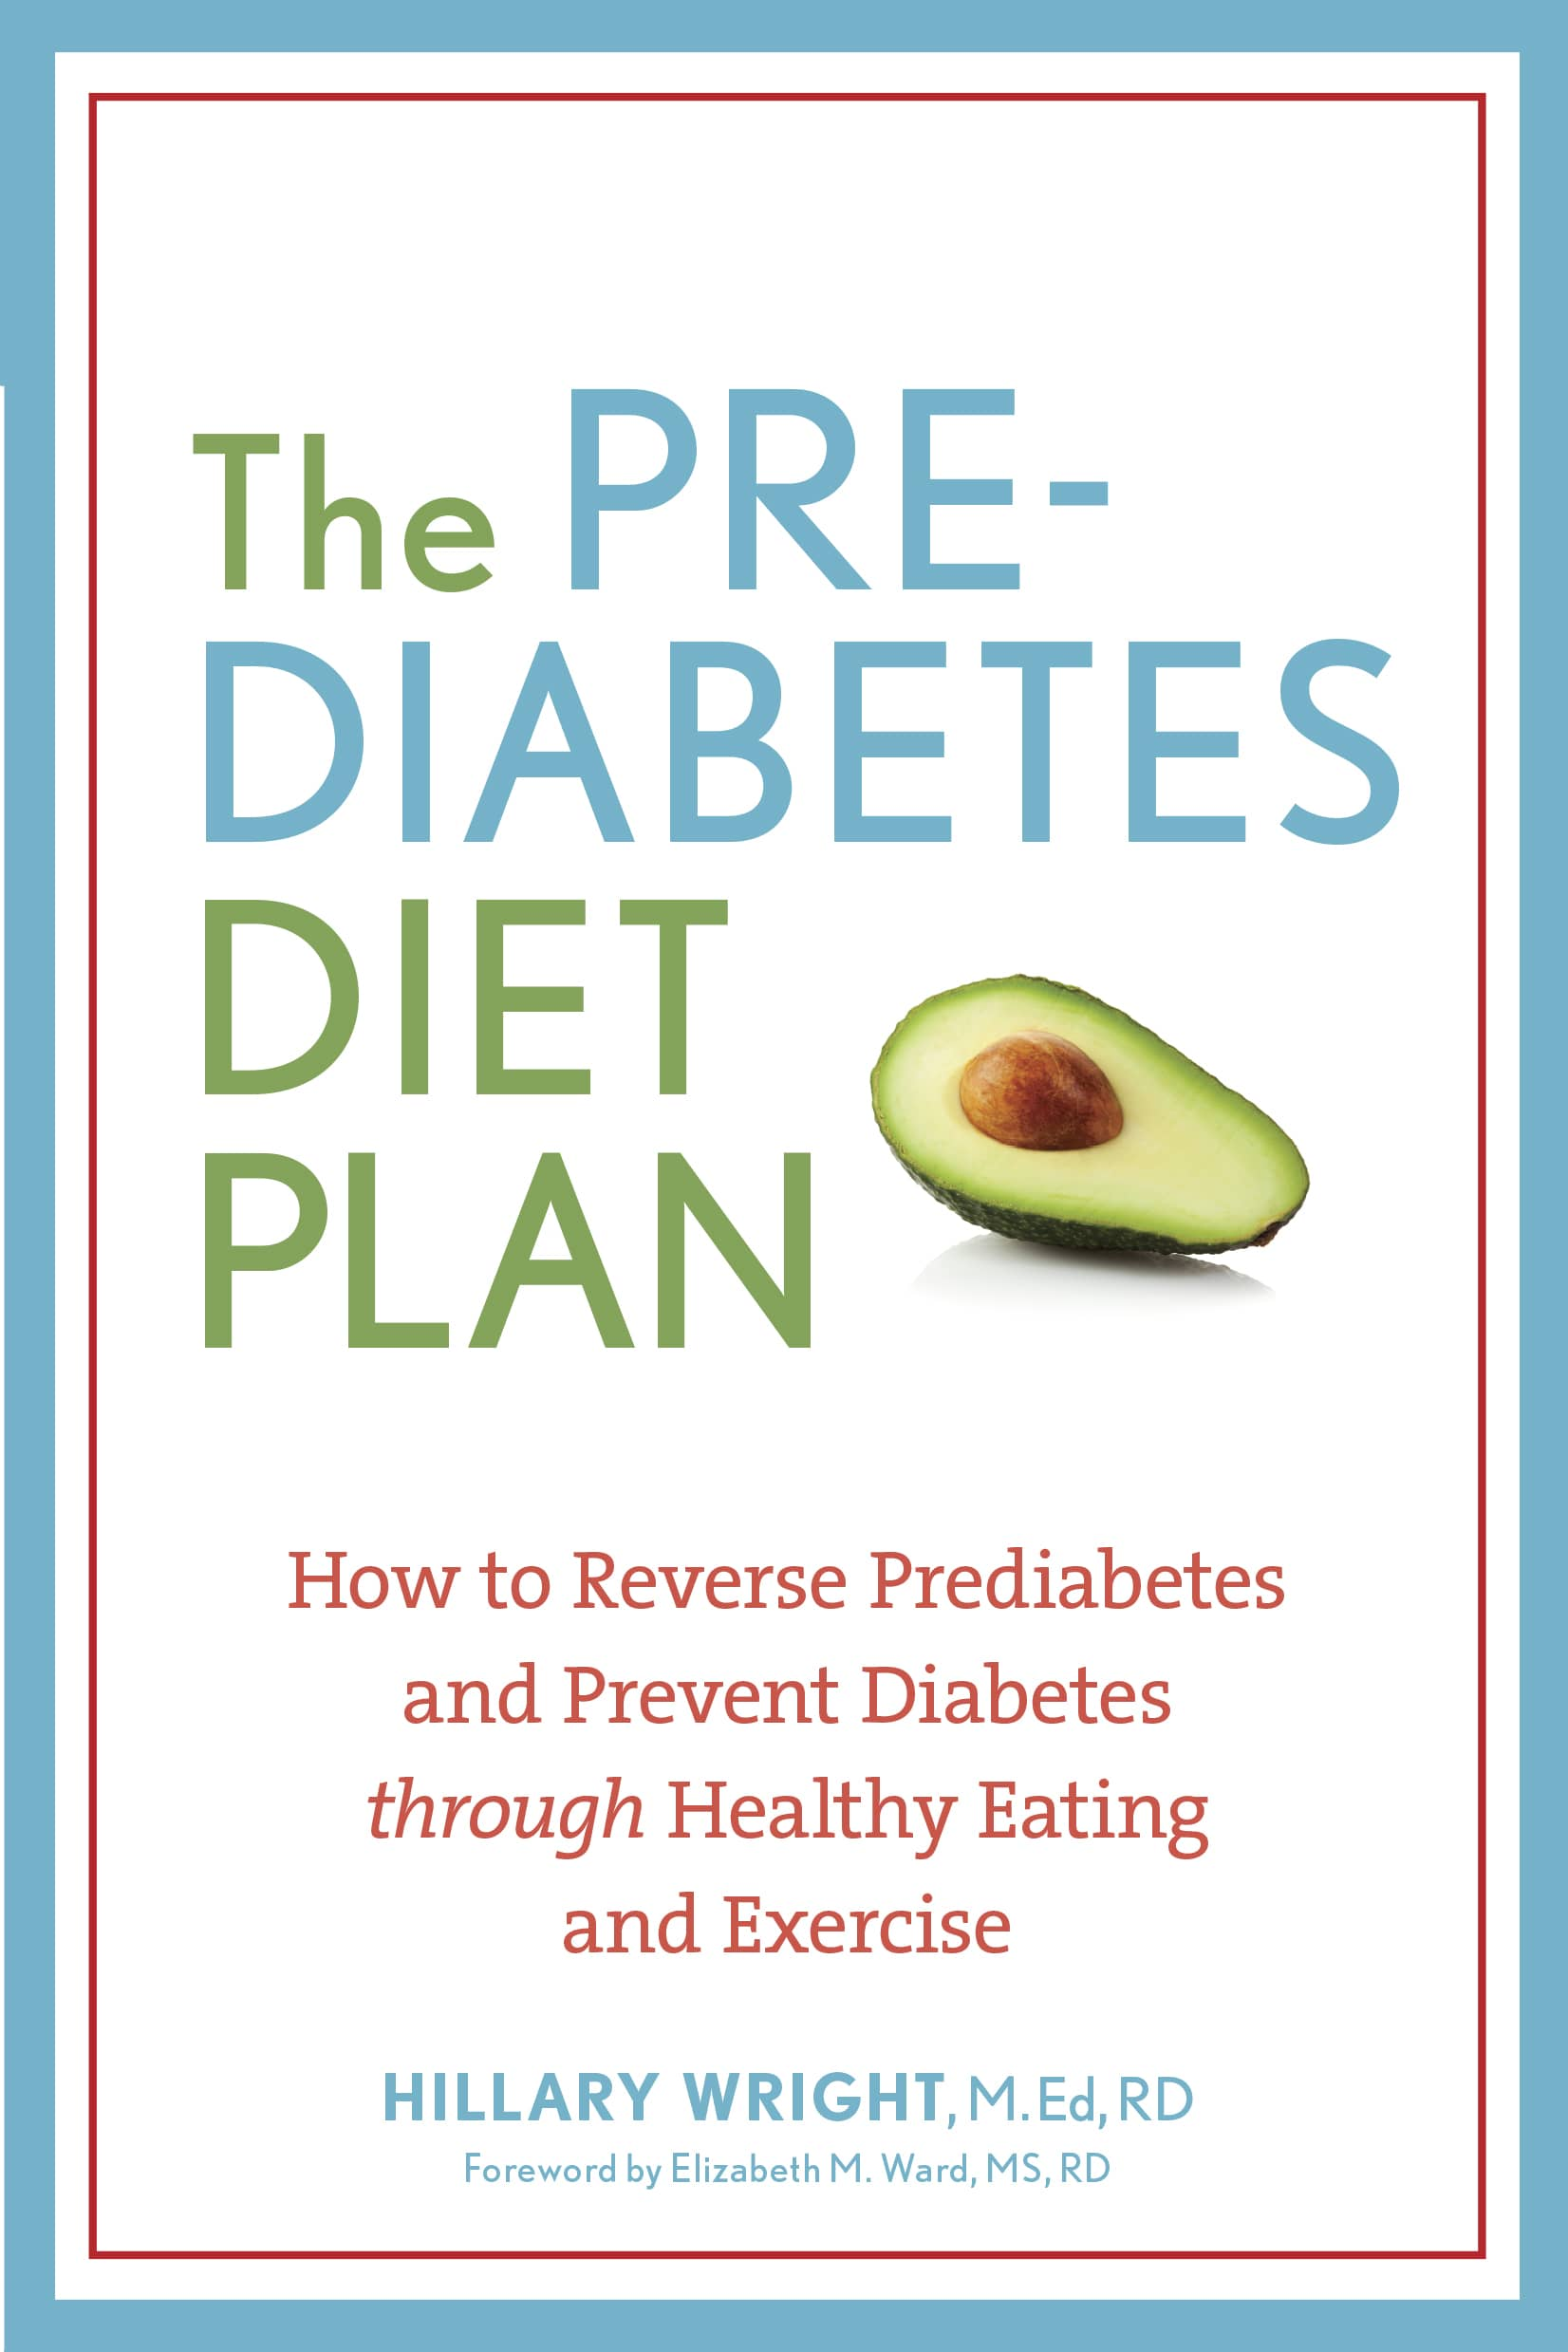 Can you reverse diabetes through diet and exercise apps